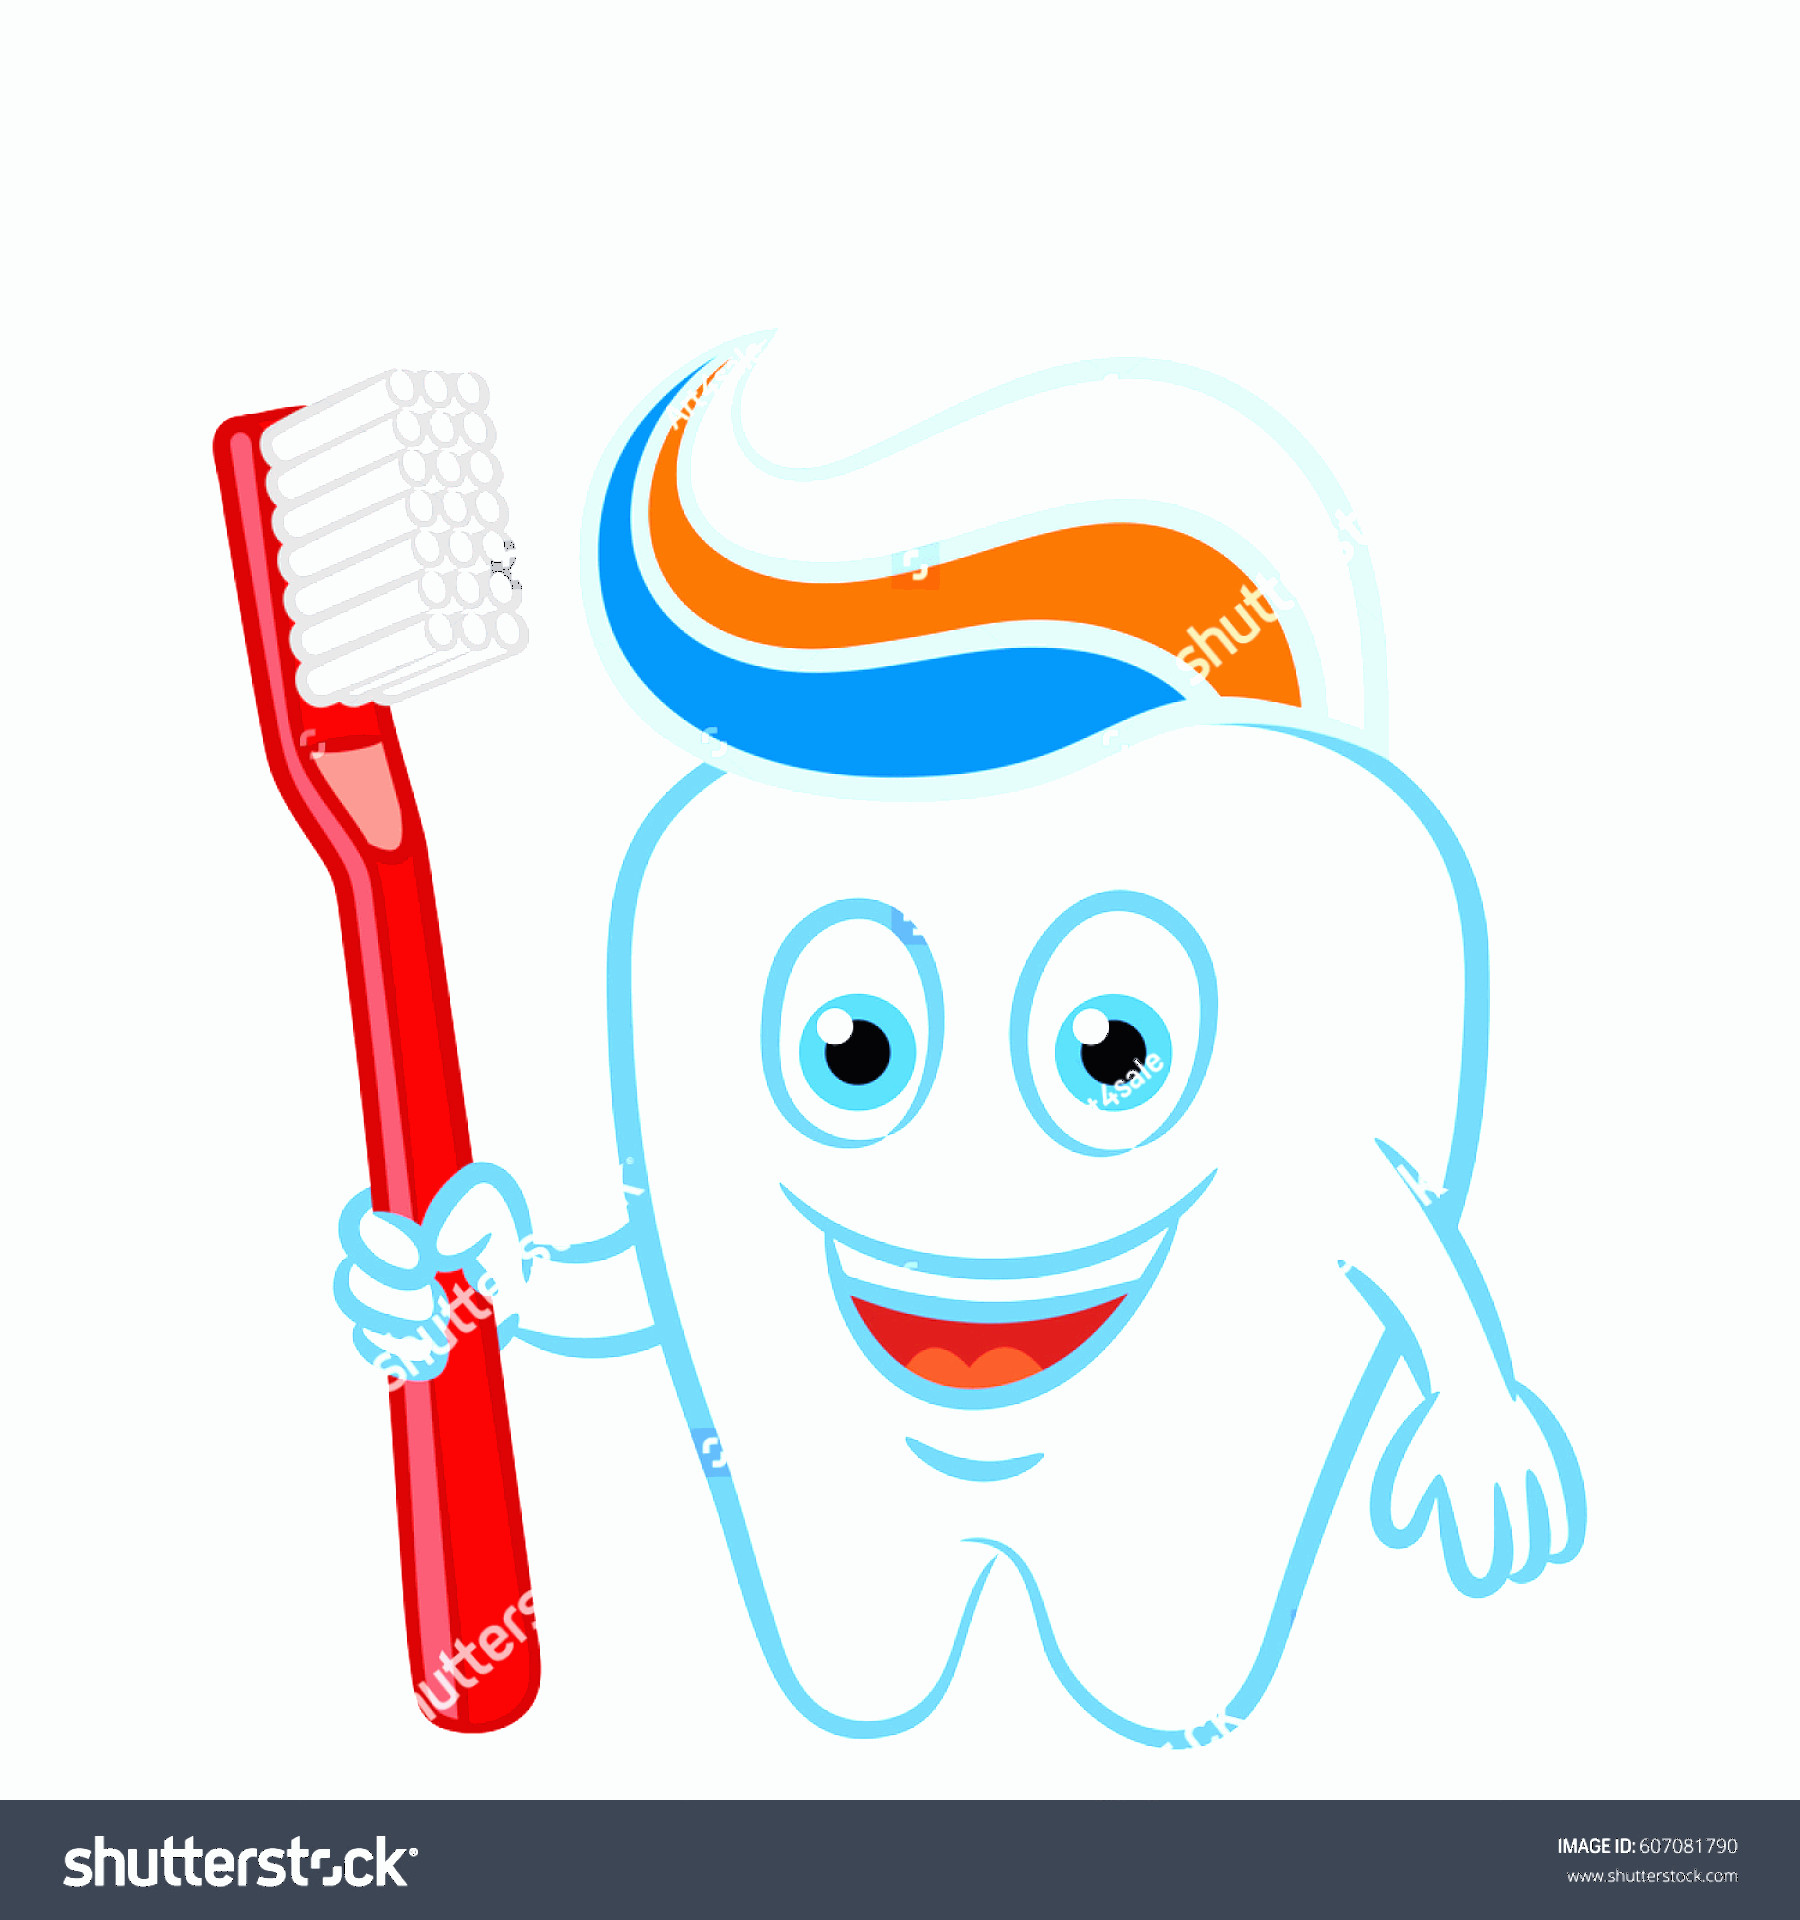 Toothpaste Cartoon Vector: Cartoon Tooth Toothbrush Toothpaste Prepared Brush